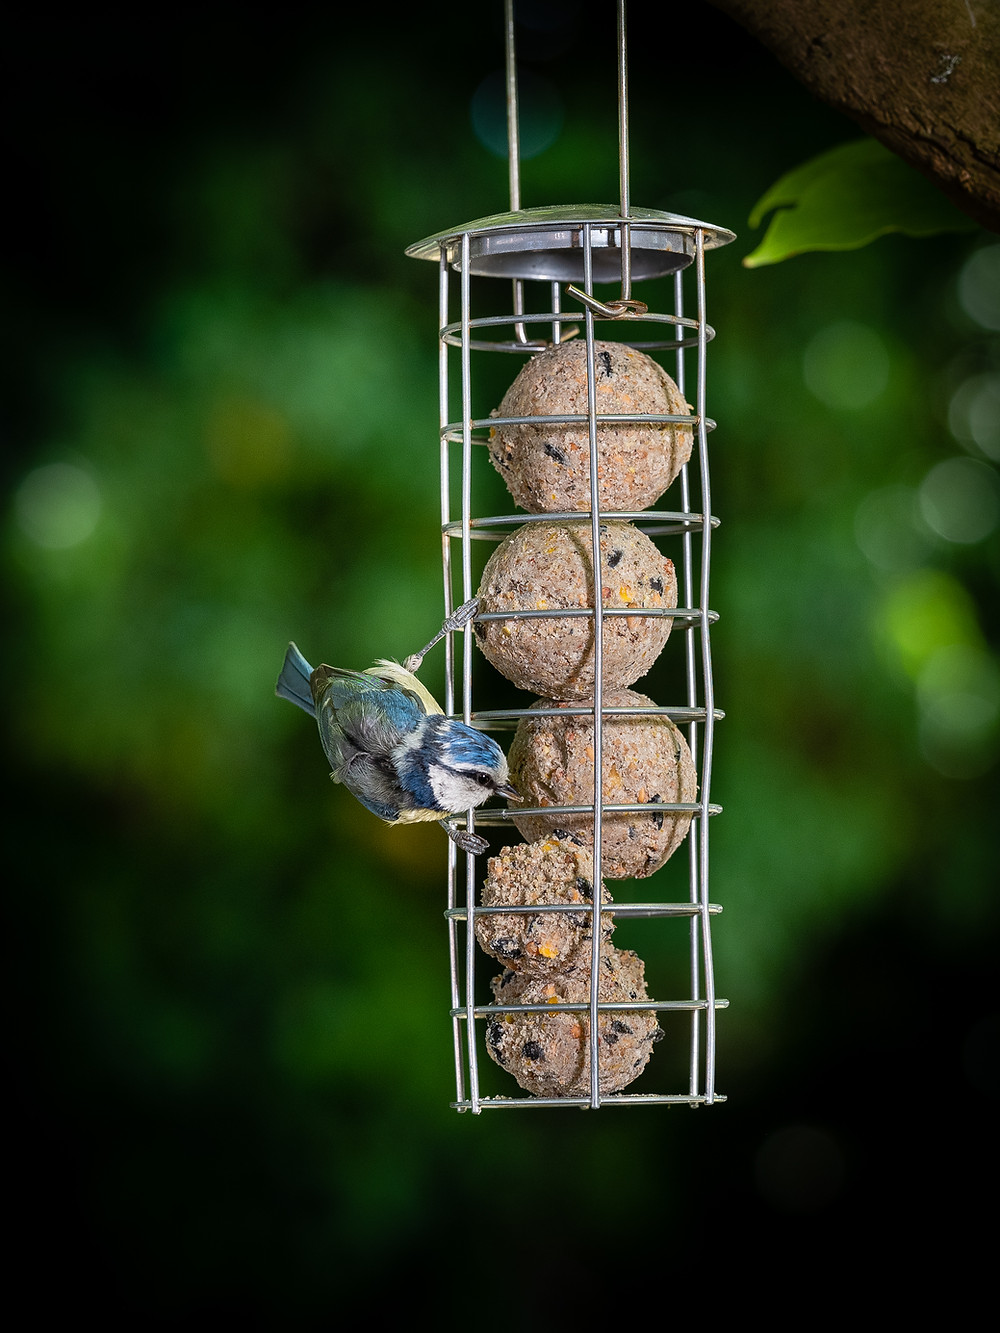 Blue Tit busy feeding